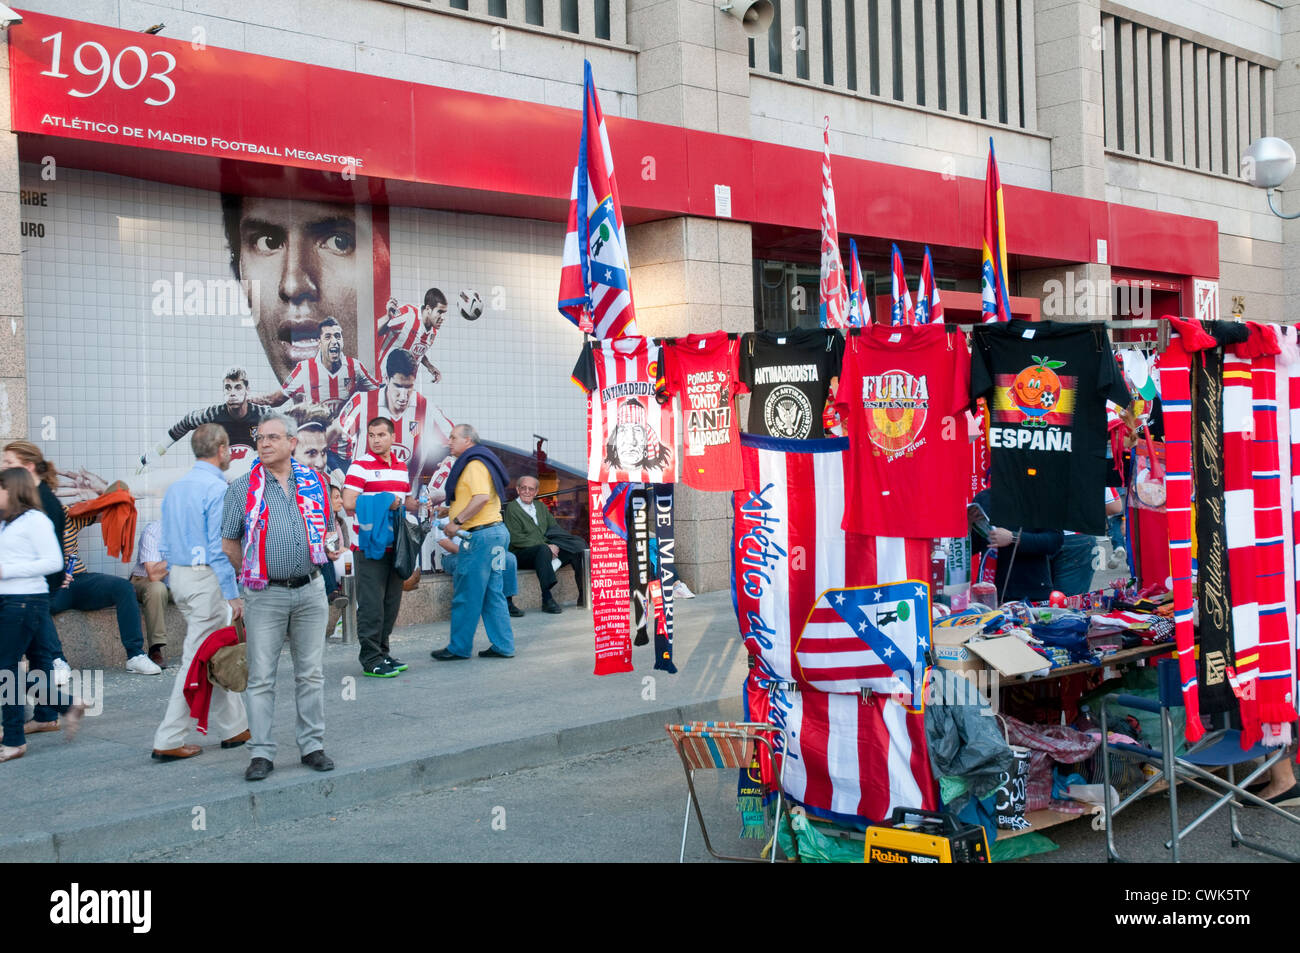 Atmosphere before the Atletico de Madrid-Hercules football match. Vicente Calderon stadium, Madrid, Spain. - Stock Image